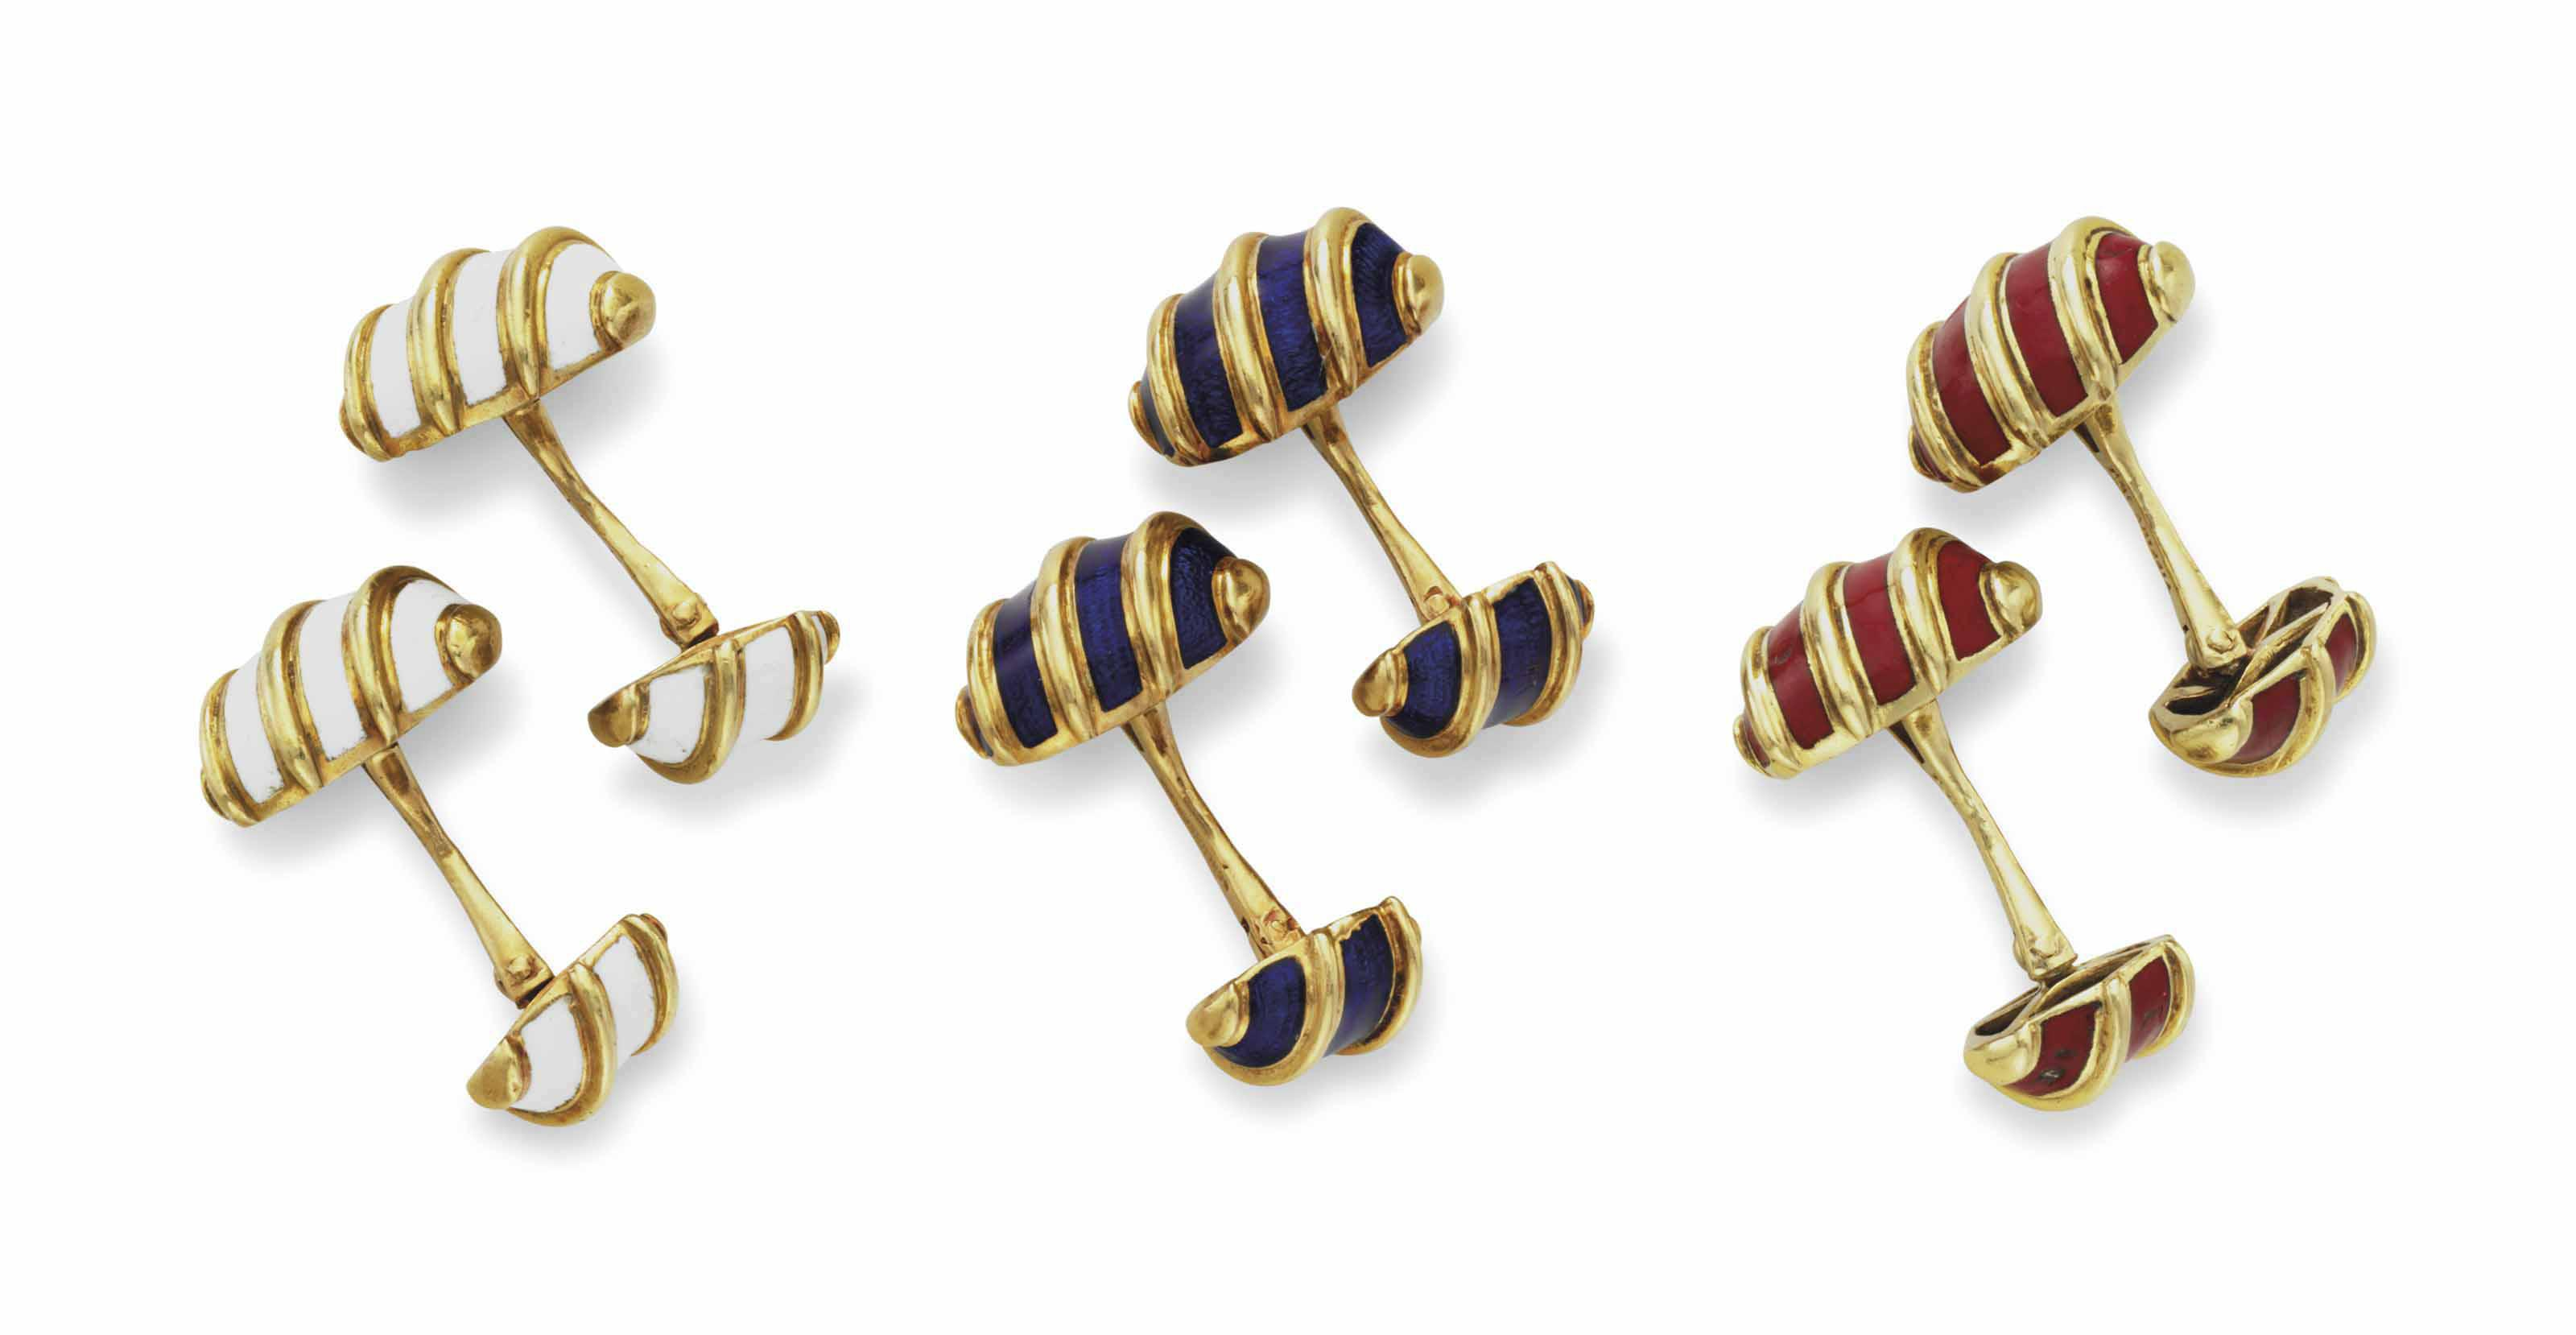 bec1ad018 THREE PAIRS OF GOLD AND ENAMEL CUFFLINKS BY JEAN SCHLUMBERGER FOR TIFFANY &  CO.